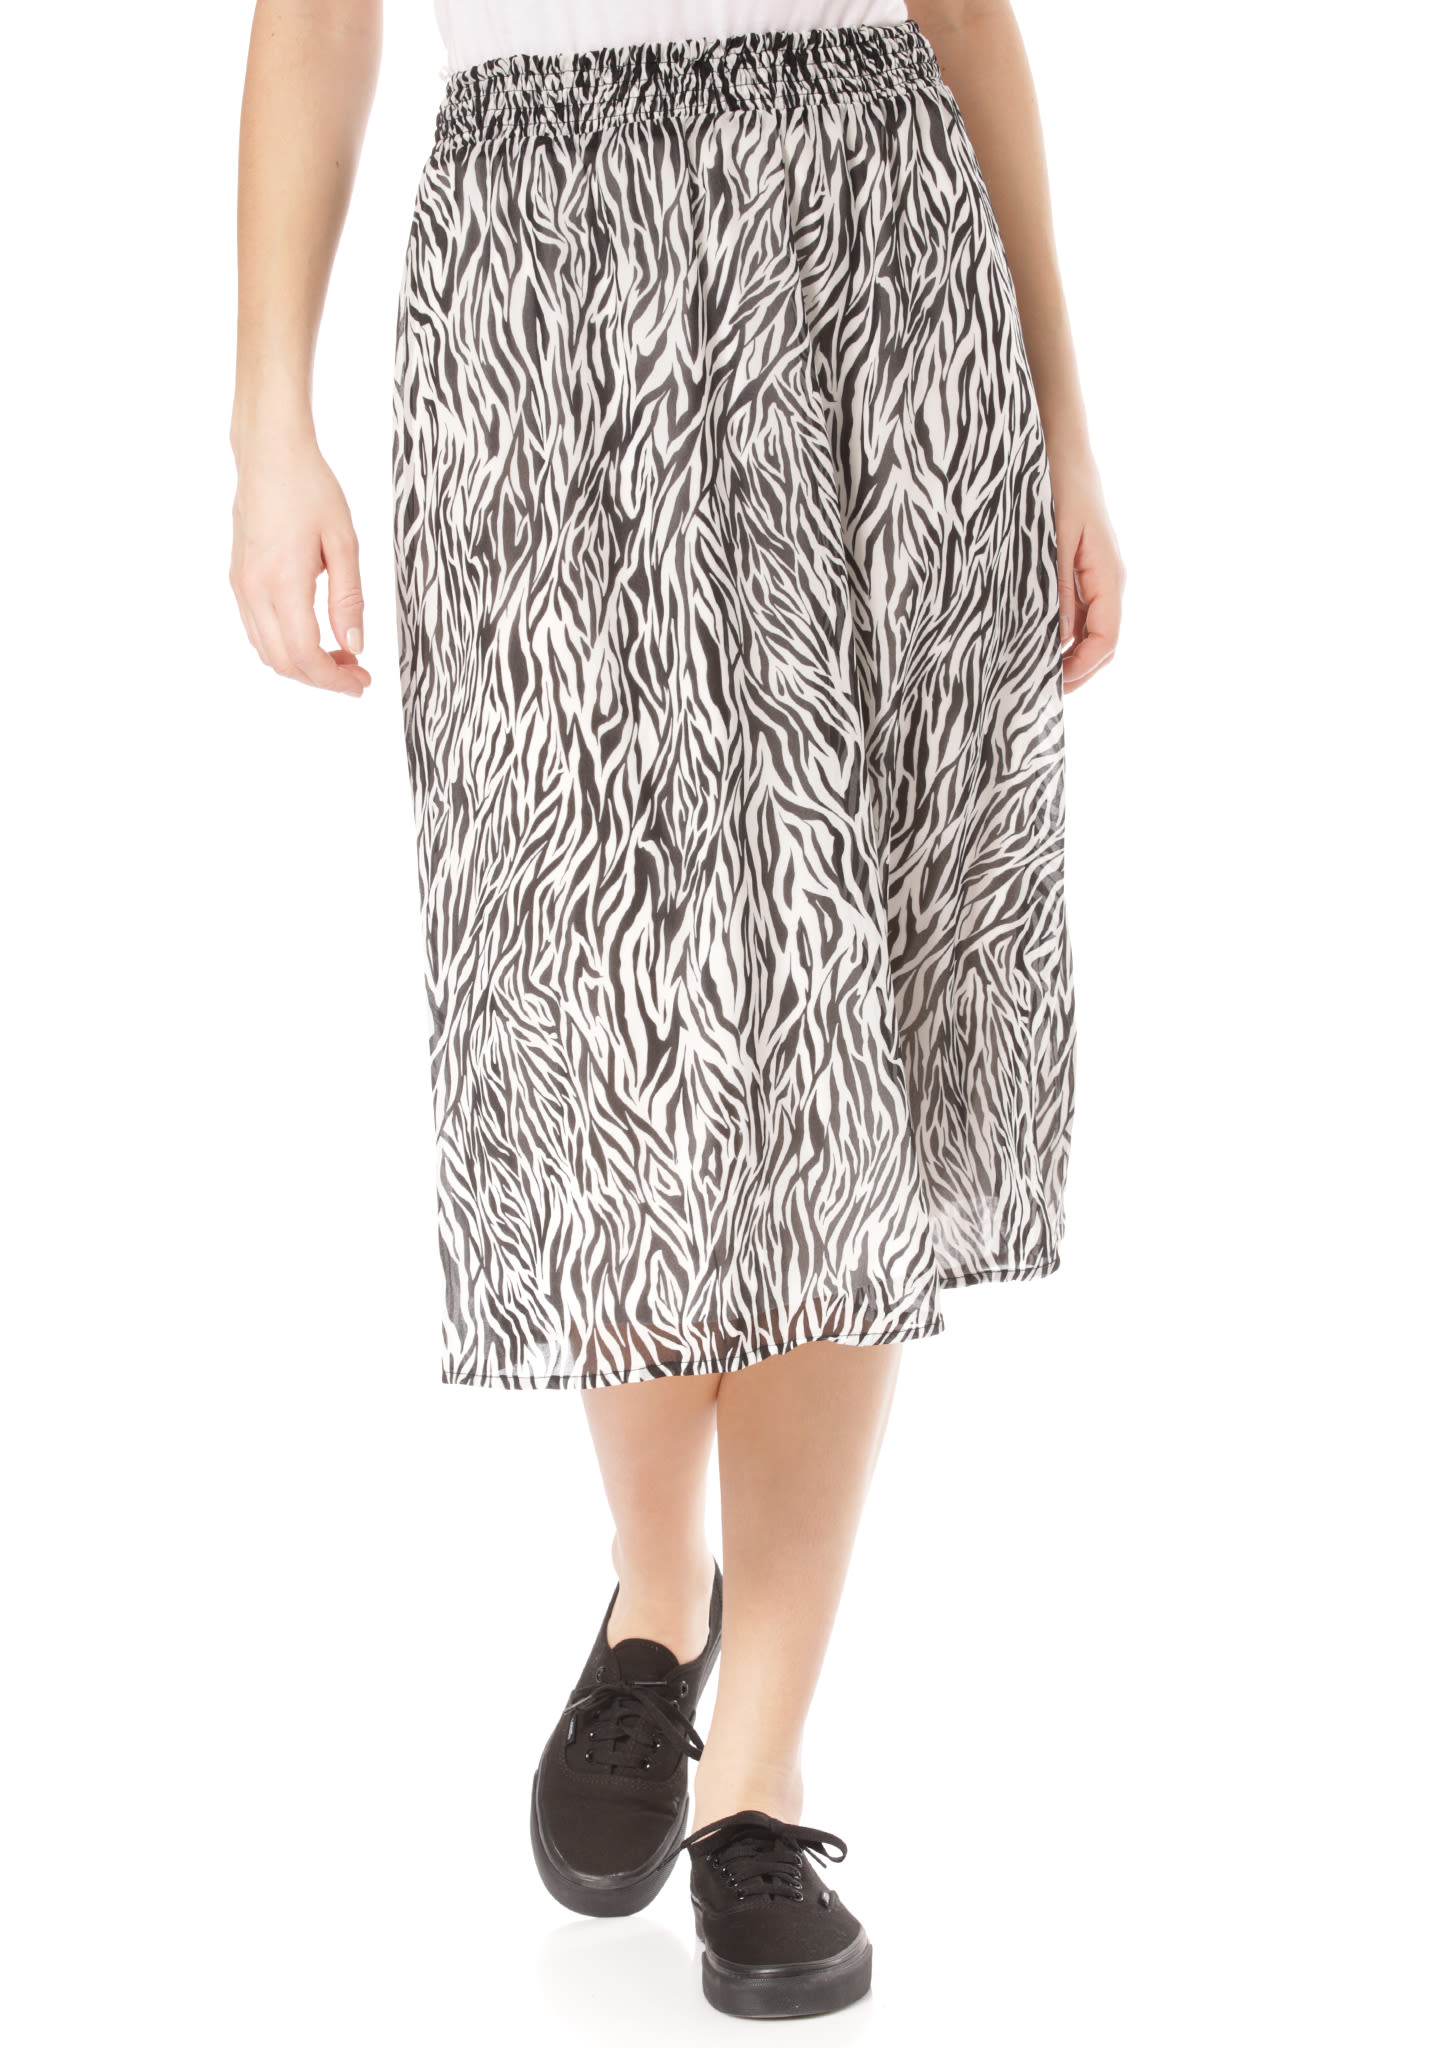 69c071b3fa Vila Vinema Zeena HW Midi/Rp - Skirt for Women - Beige - Planet Sports